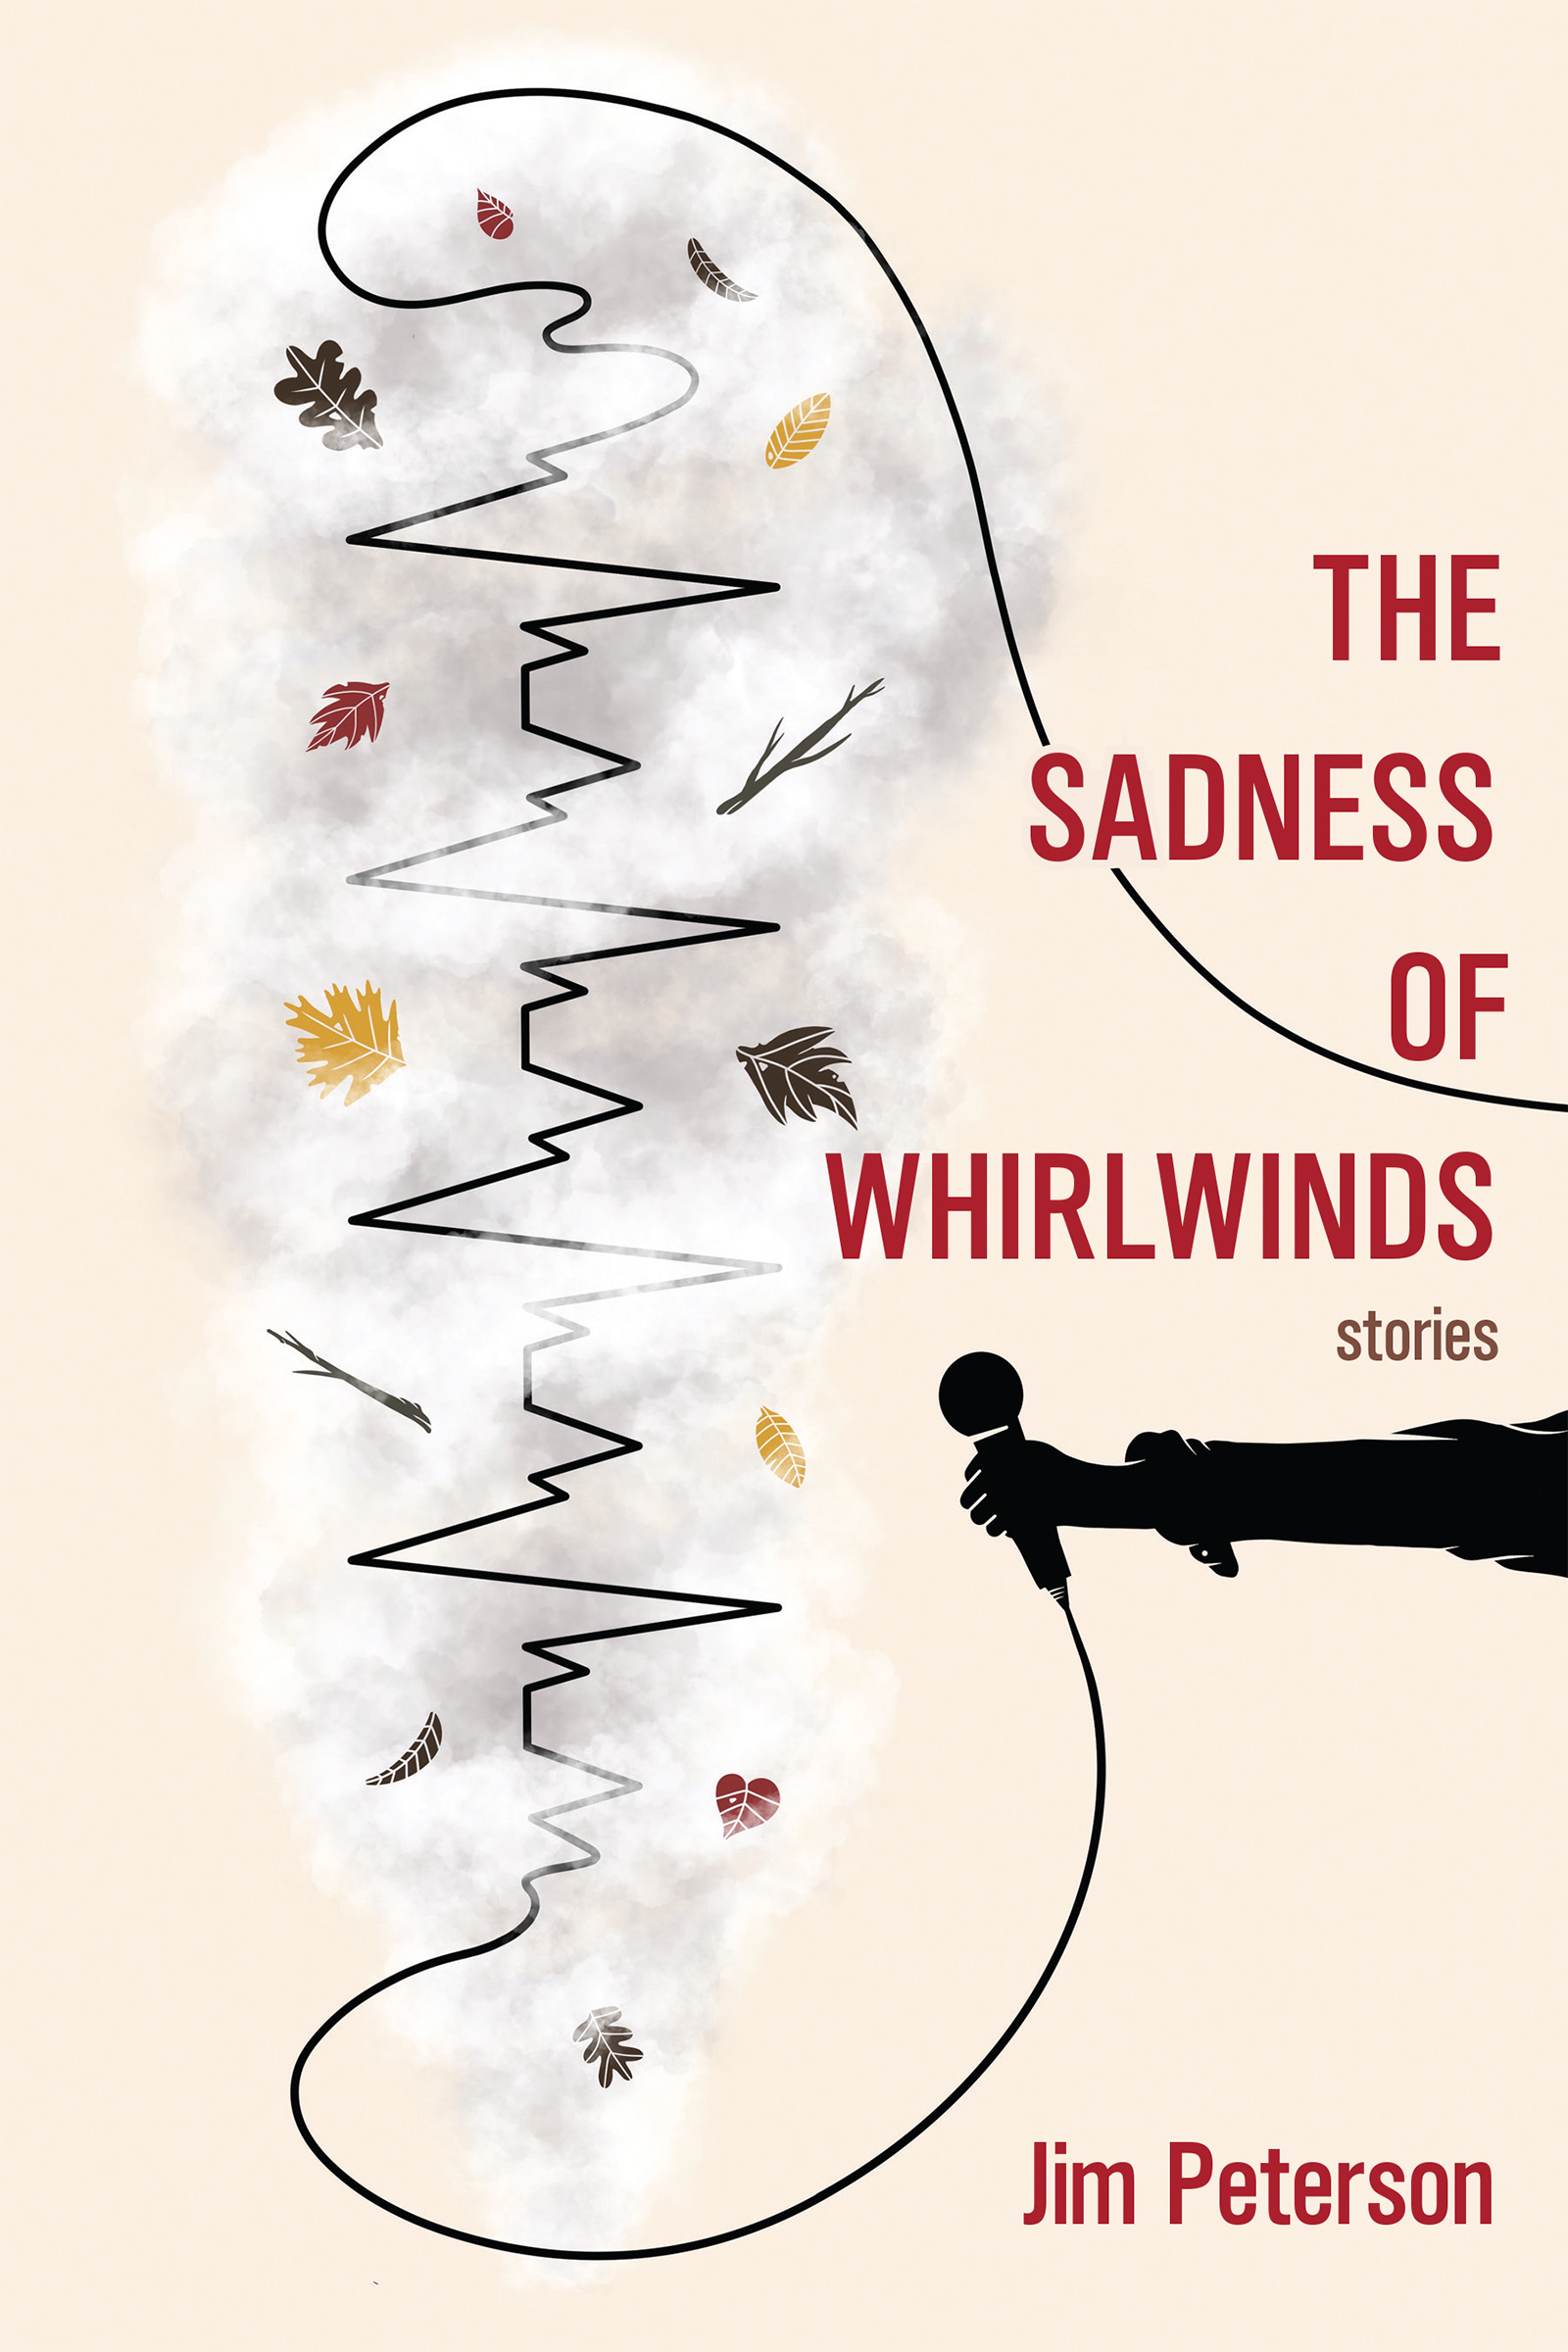 A cream cover with red script on the right side that reads The Sadness of Whirlwinds stories by Jim Peterson. Bellow the script there is an outstretched hand holding a microphone whose cable attached transforms into an outlined tune, with fall leaves swirling around.